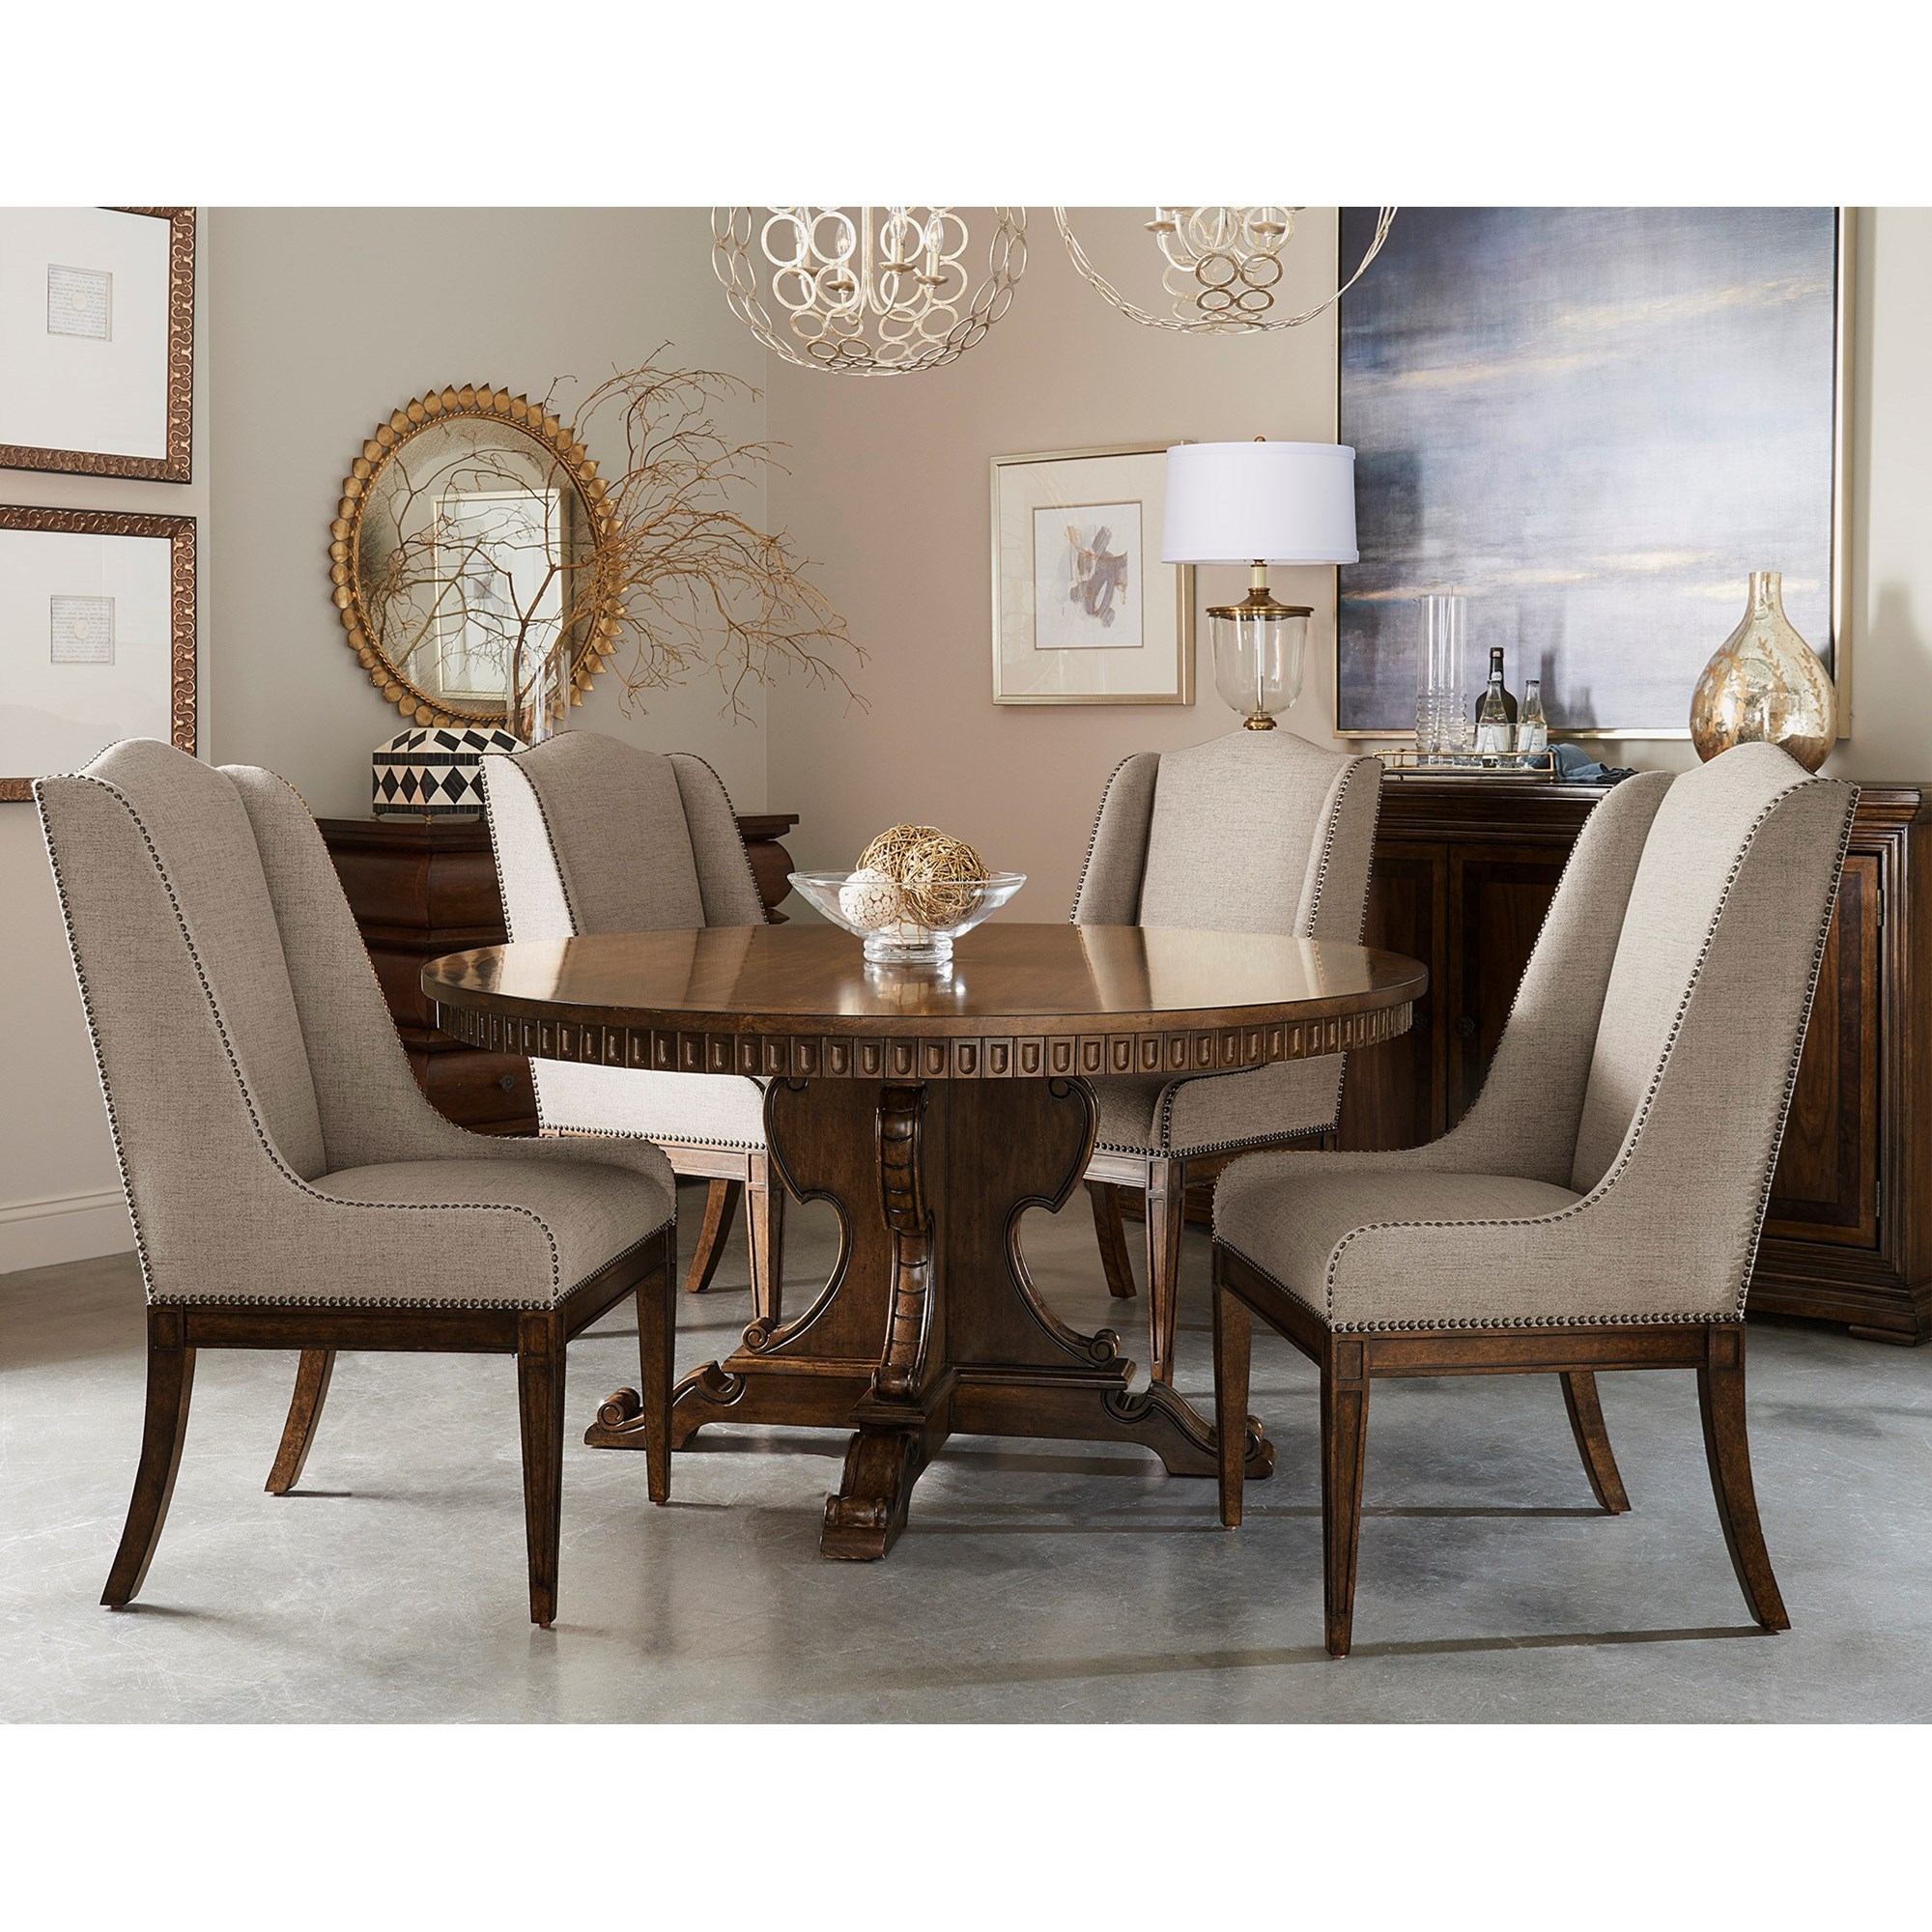 Kingsport  Casual Dining Room Group by A.R.T. Furniture Inc at Dream Home Interiors